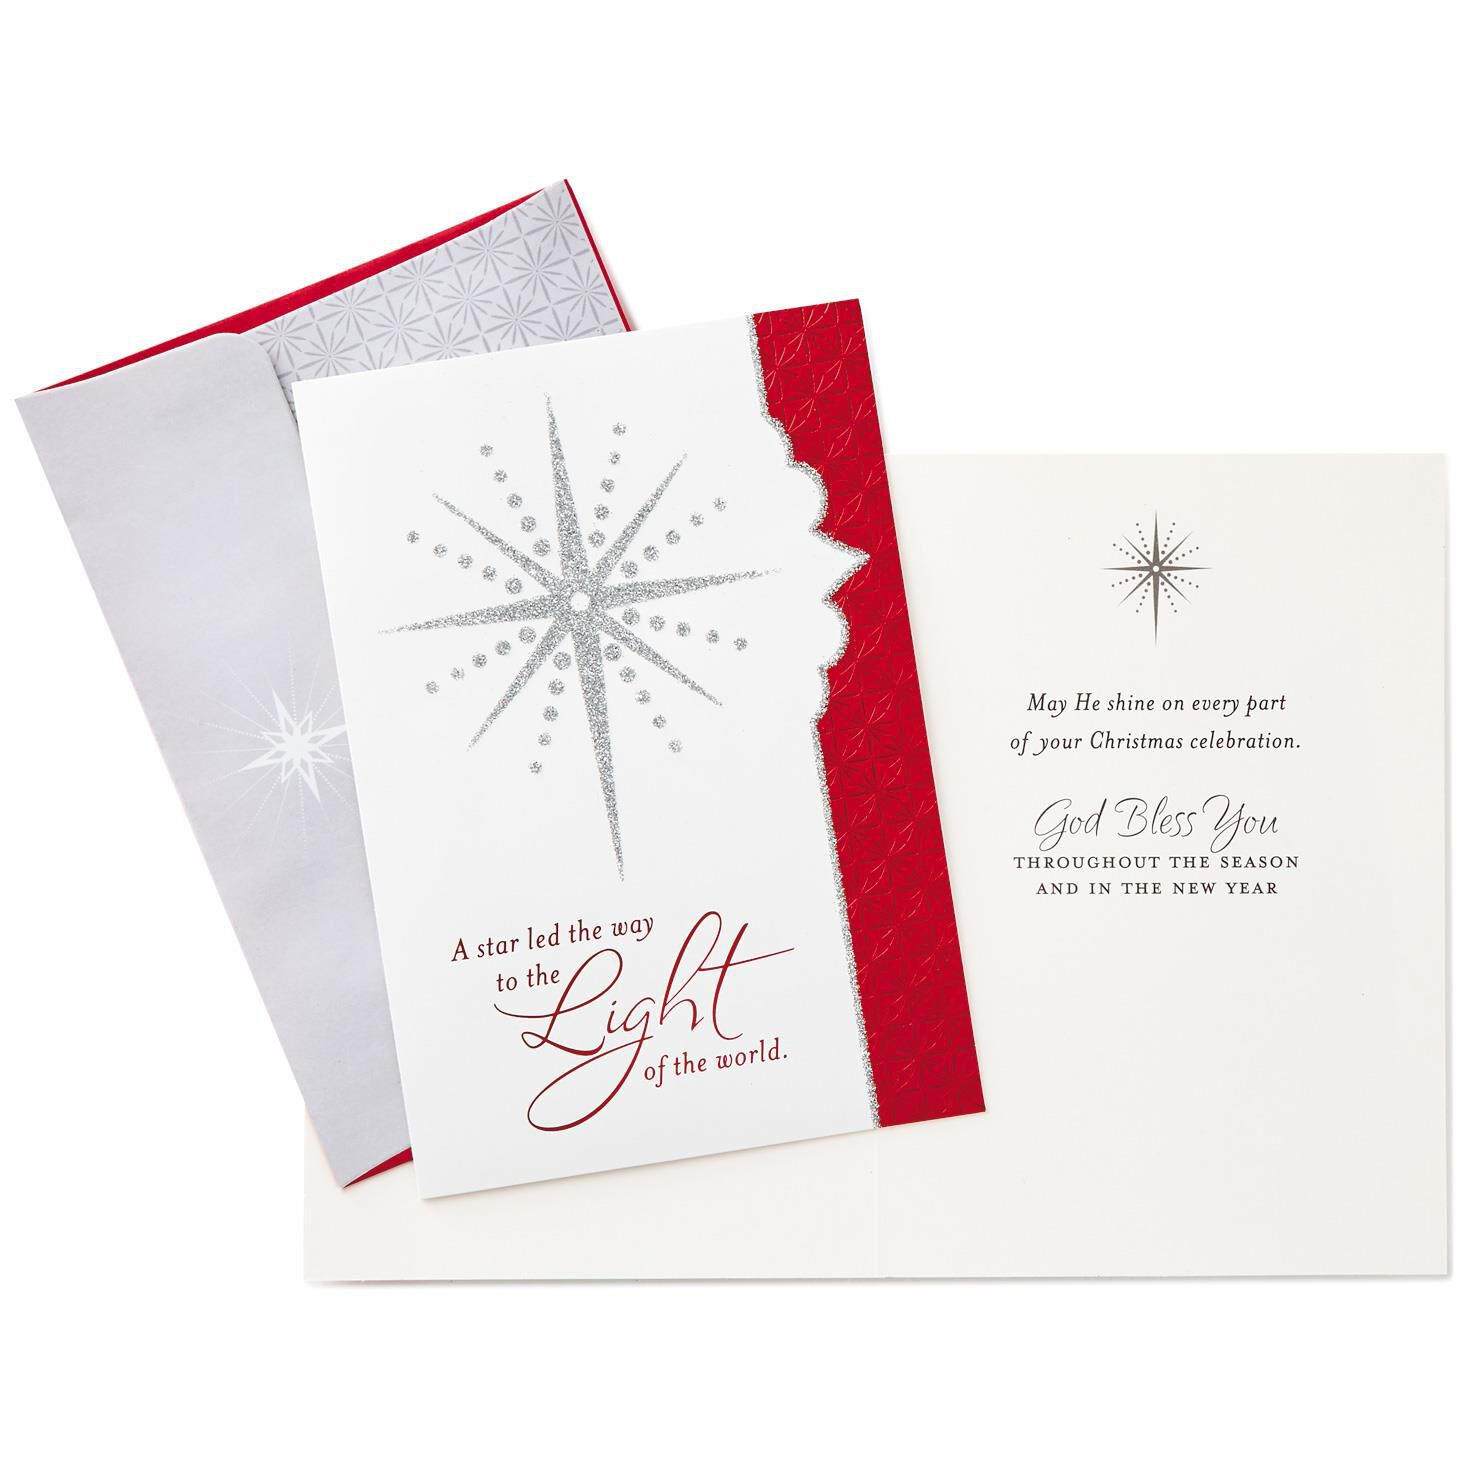 Hallmark Boxed Religious Christmas Cards 2017